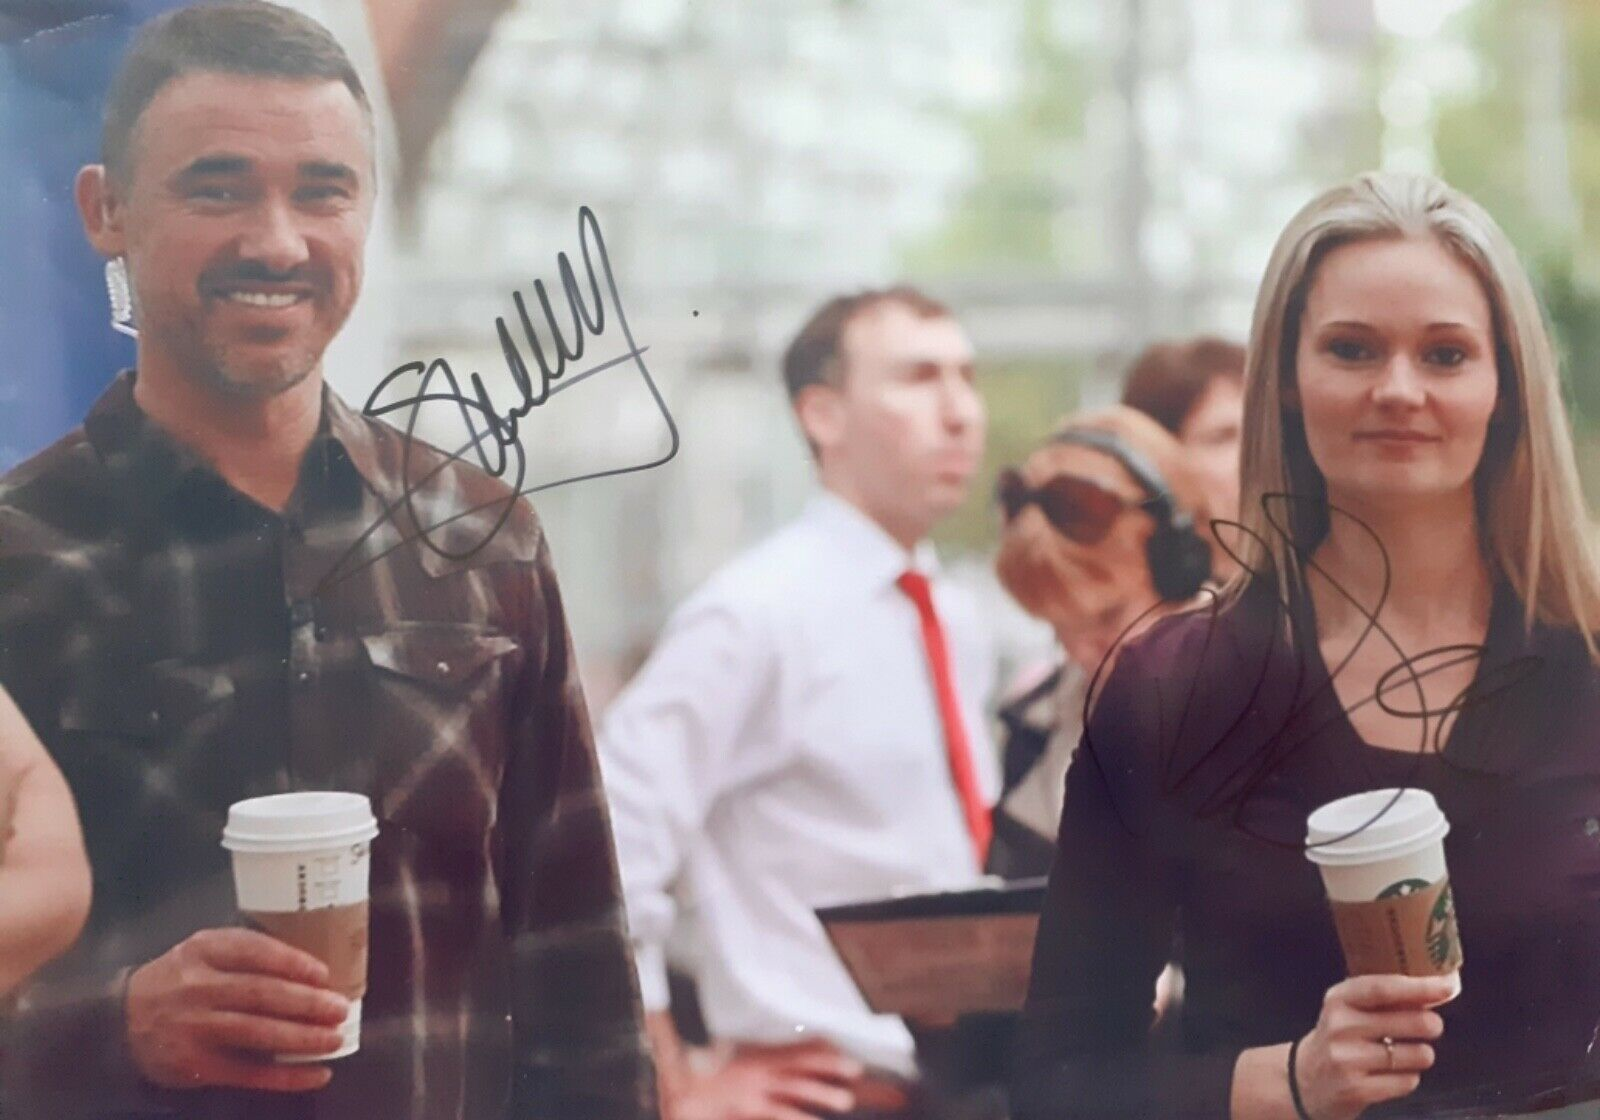 Stephen Hendry and Reanne Evans Snooker Legends Signed 10 x 8 Photo